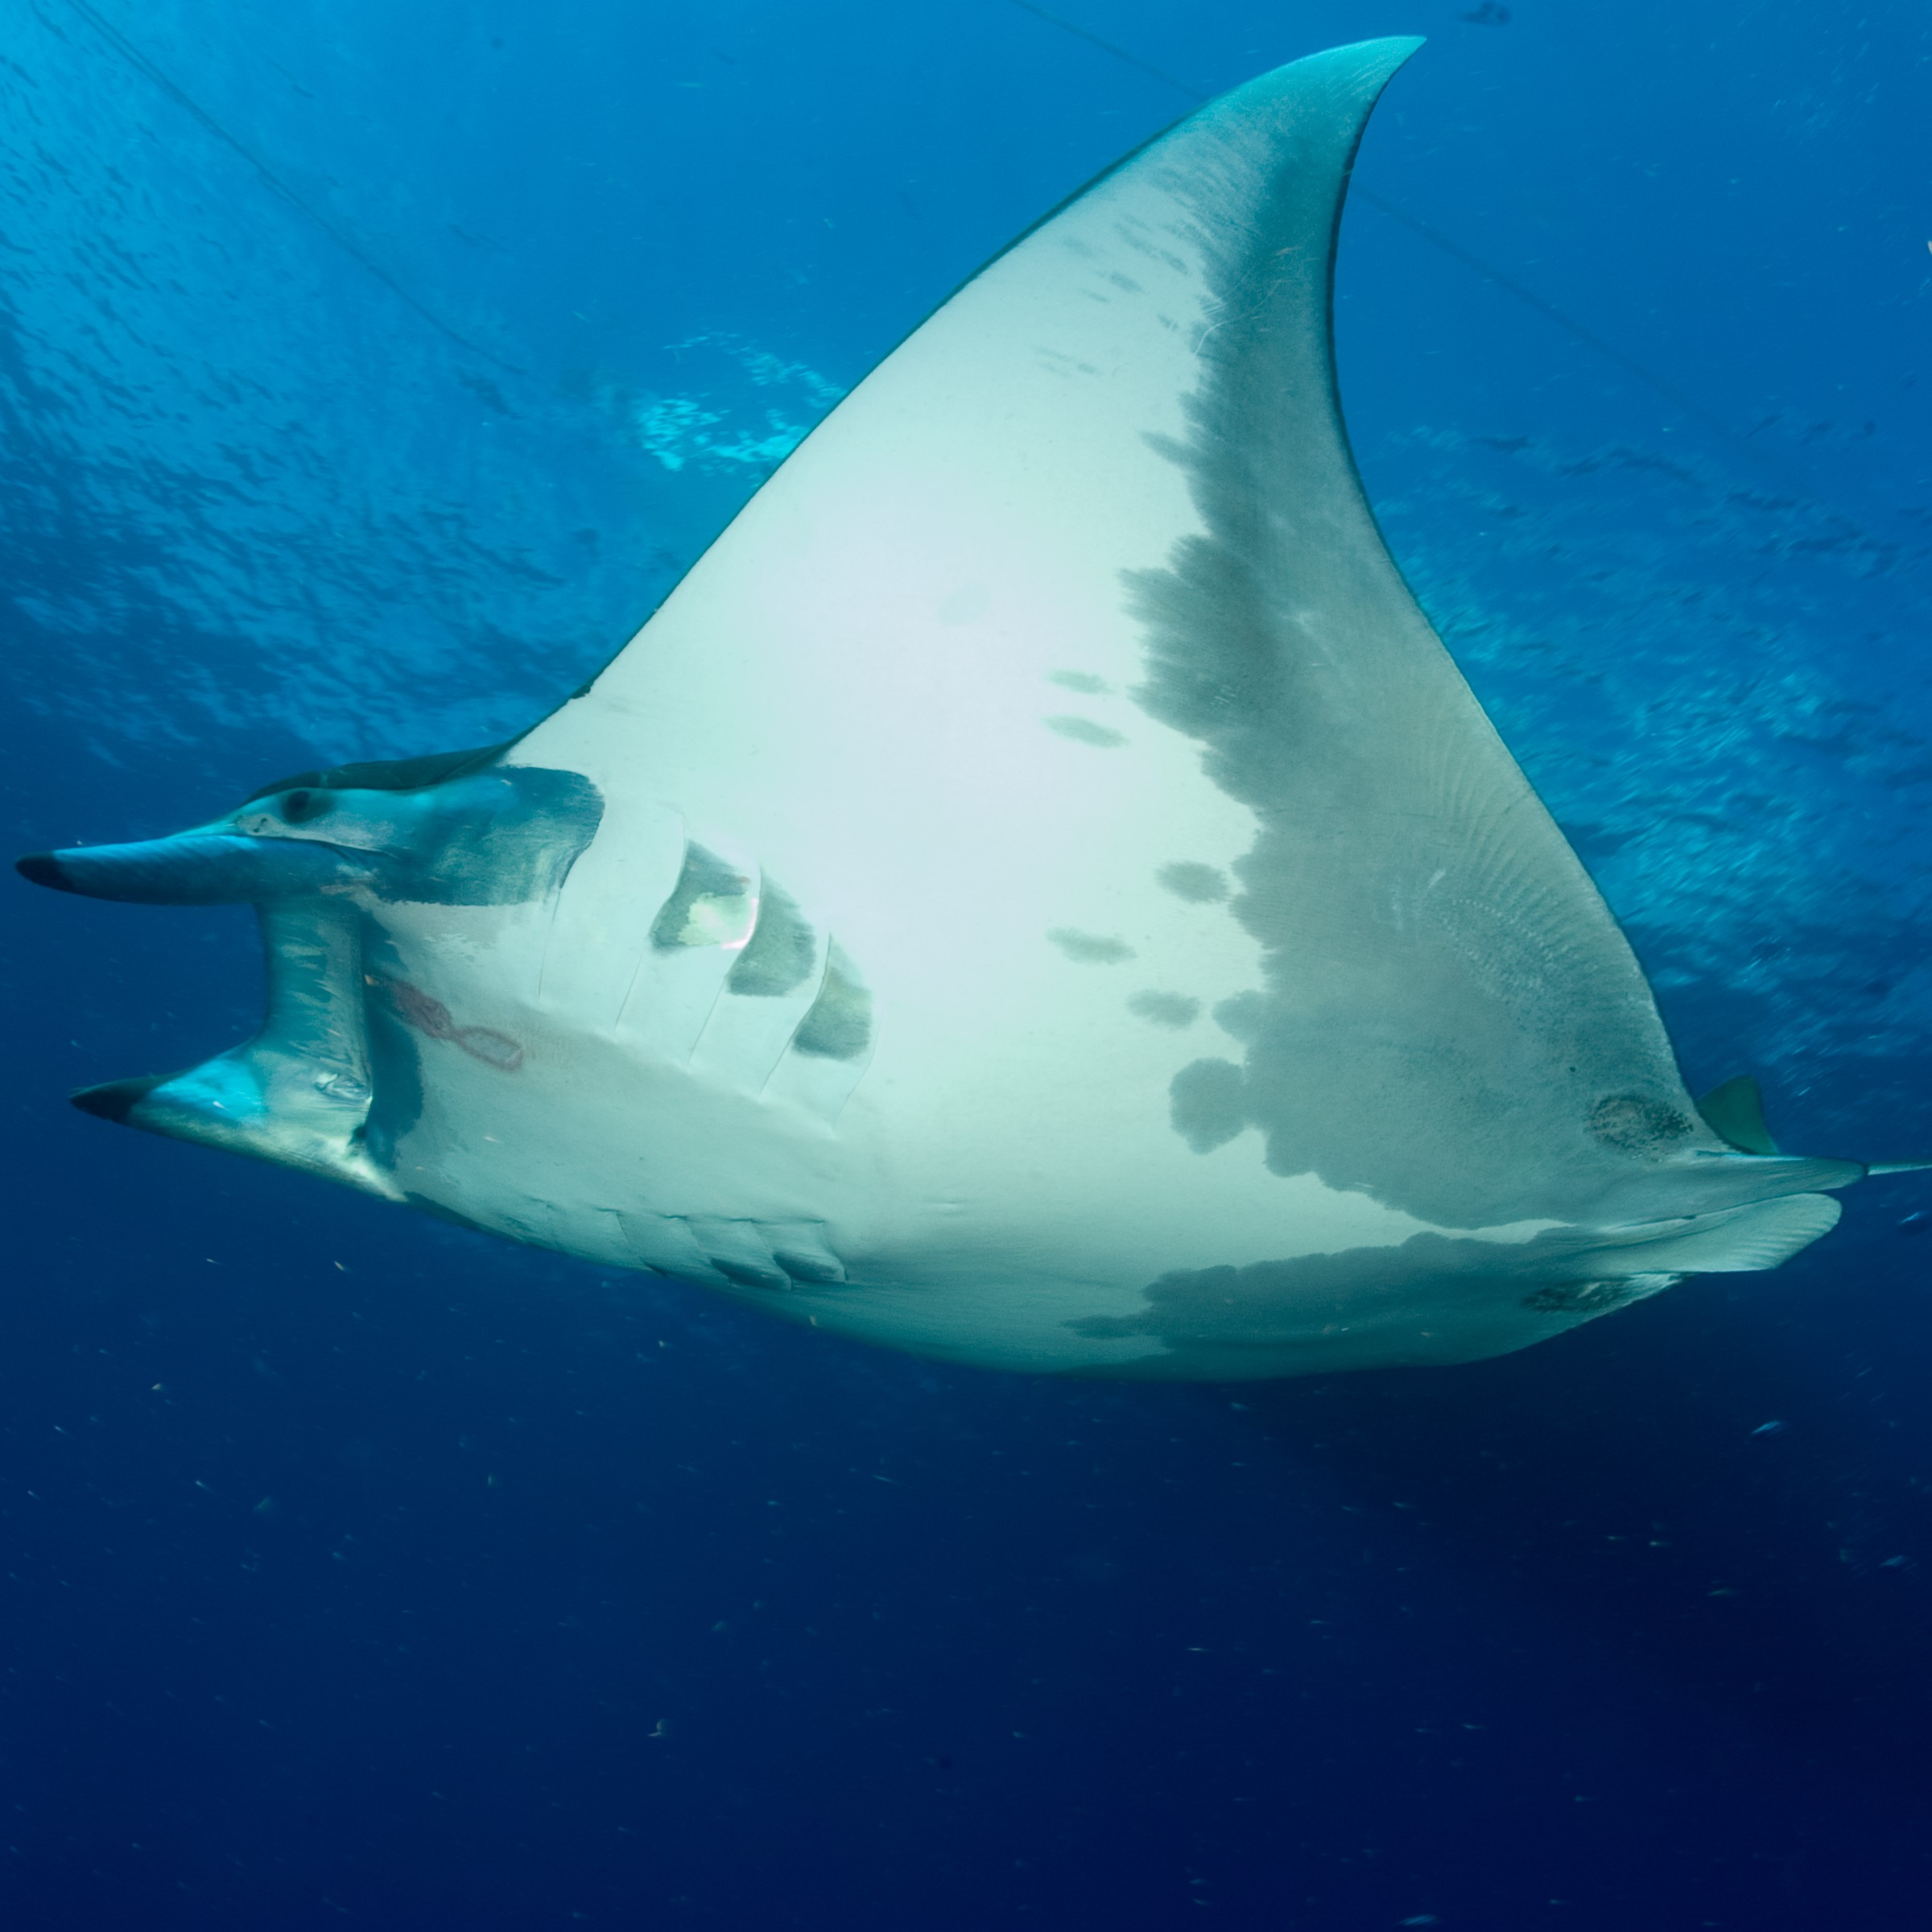 Lesser Devil Ray image